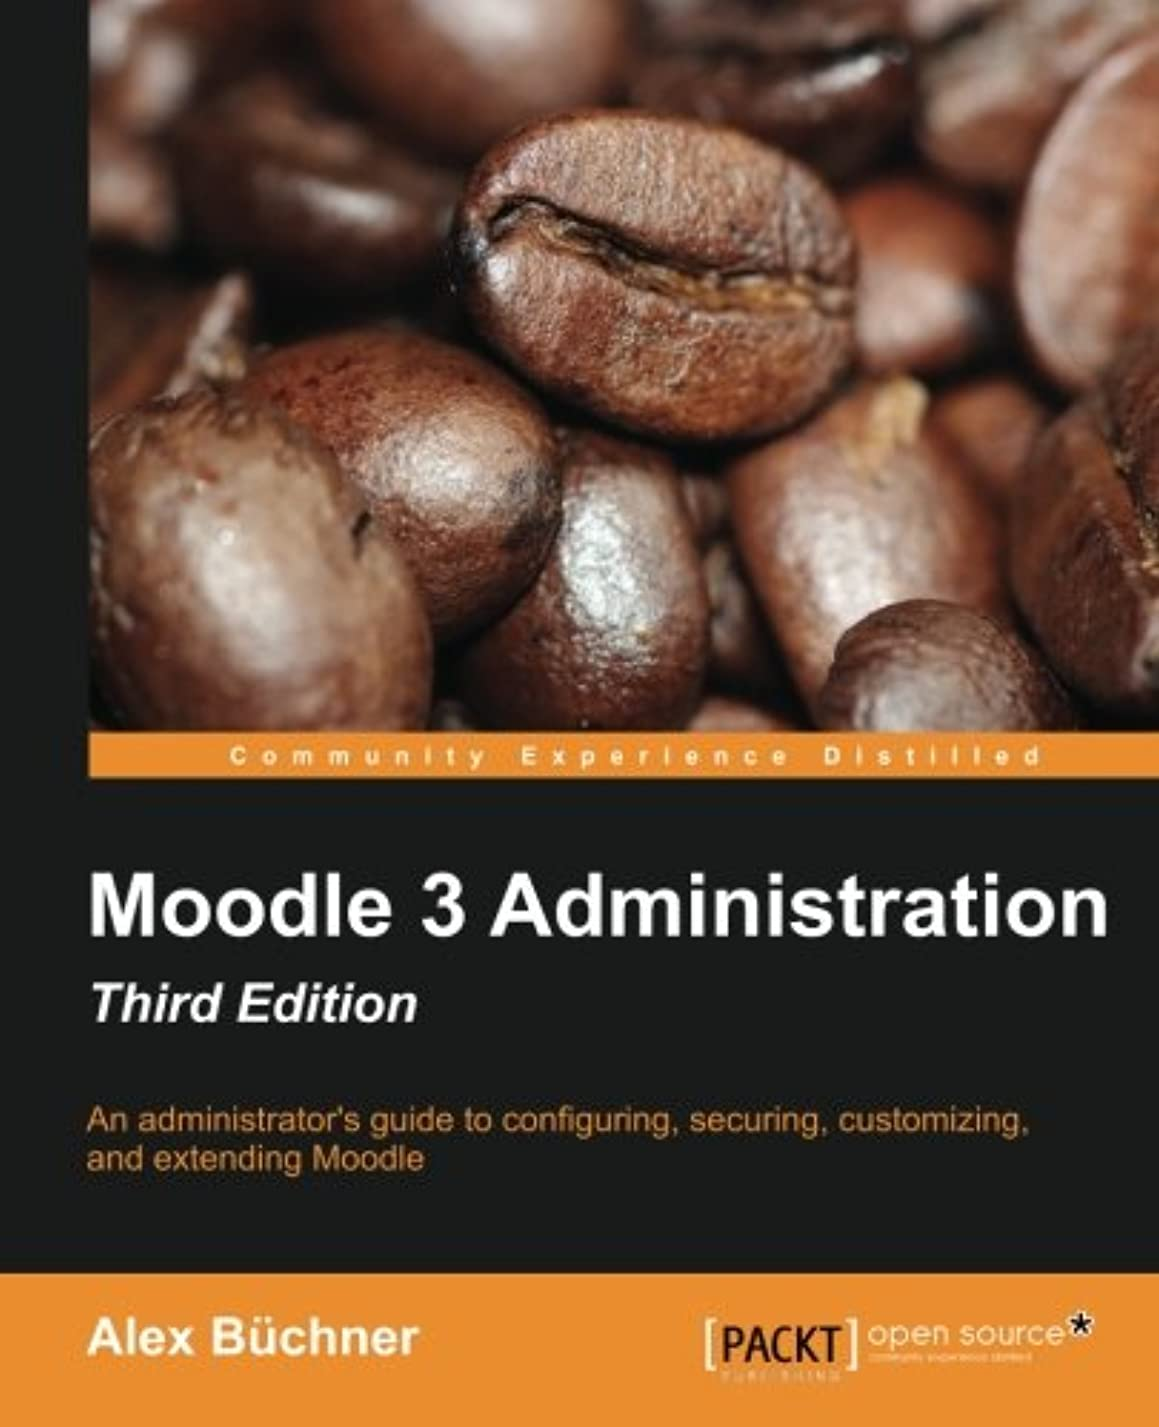 眩惑するインペリアルミシン目Moodle 3 Administration: An Administrator's Guide to Configuring, Securing, Customizing, and Extending Moodle